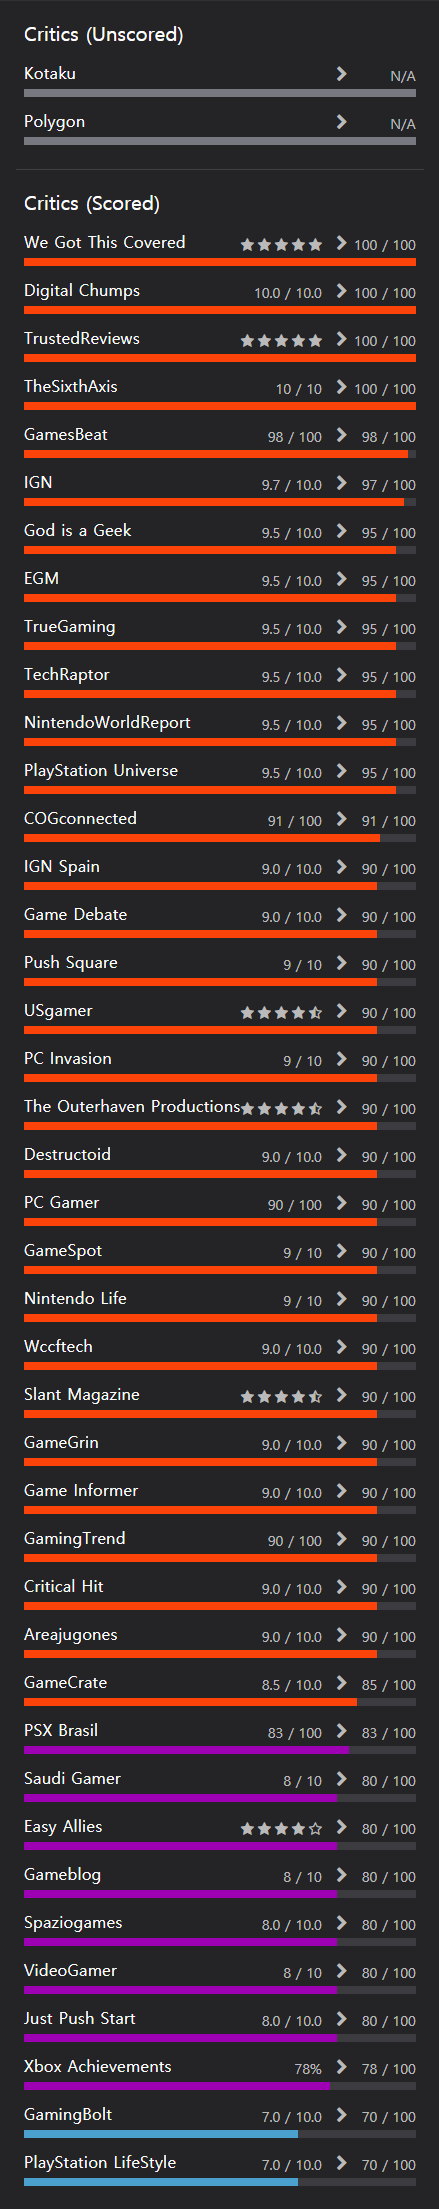 screenshot-opencritic.com-2018.08.07-11-06-25.png